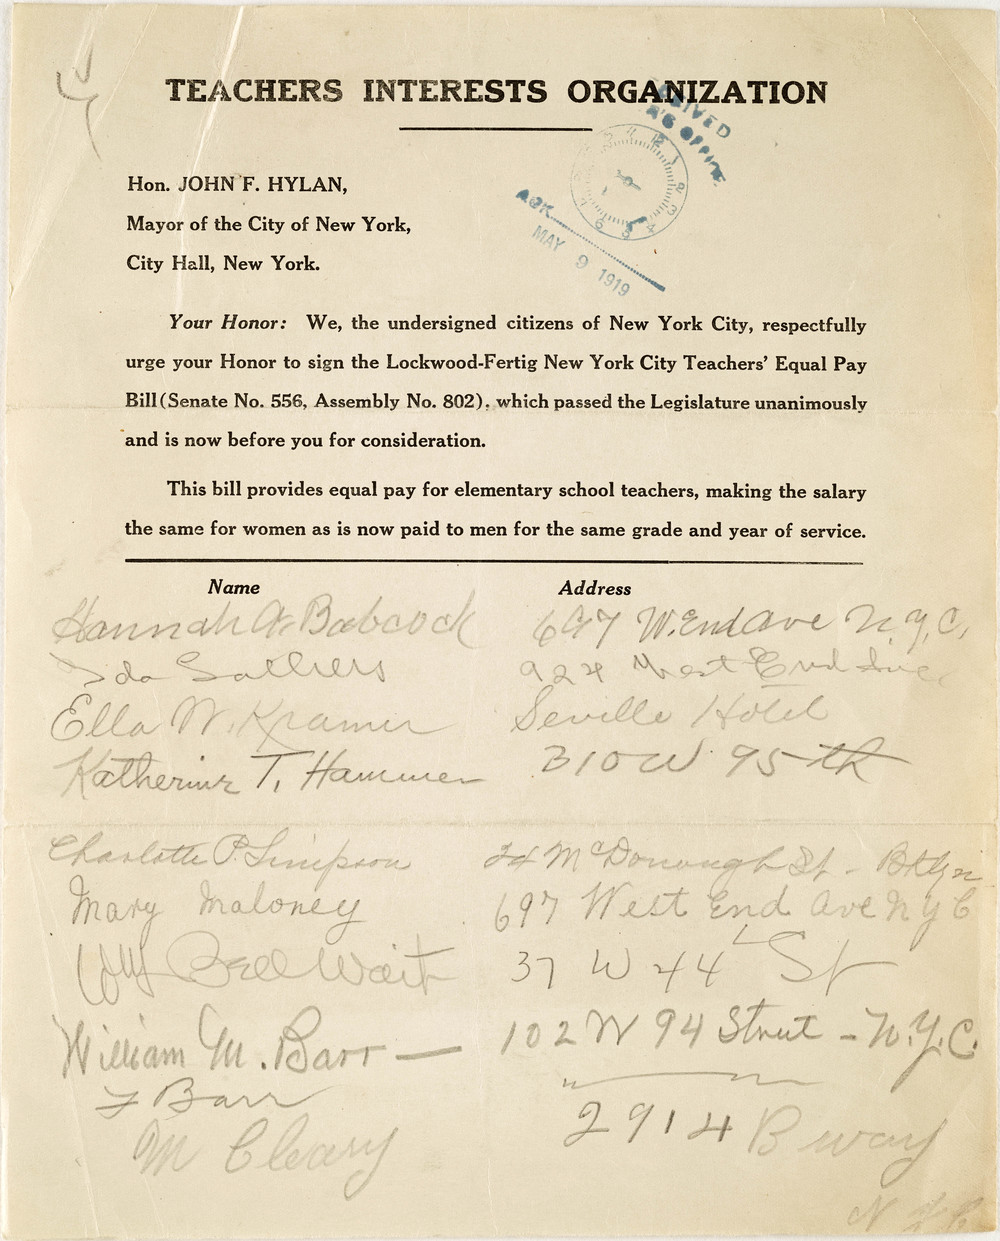 In 1919, men and women of the Teachers Interest Organization petition for equal pay.